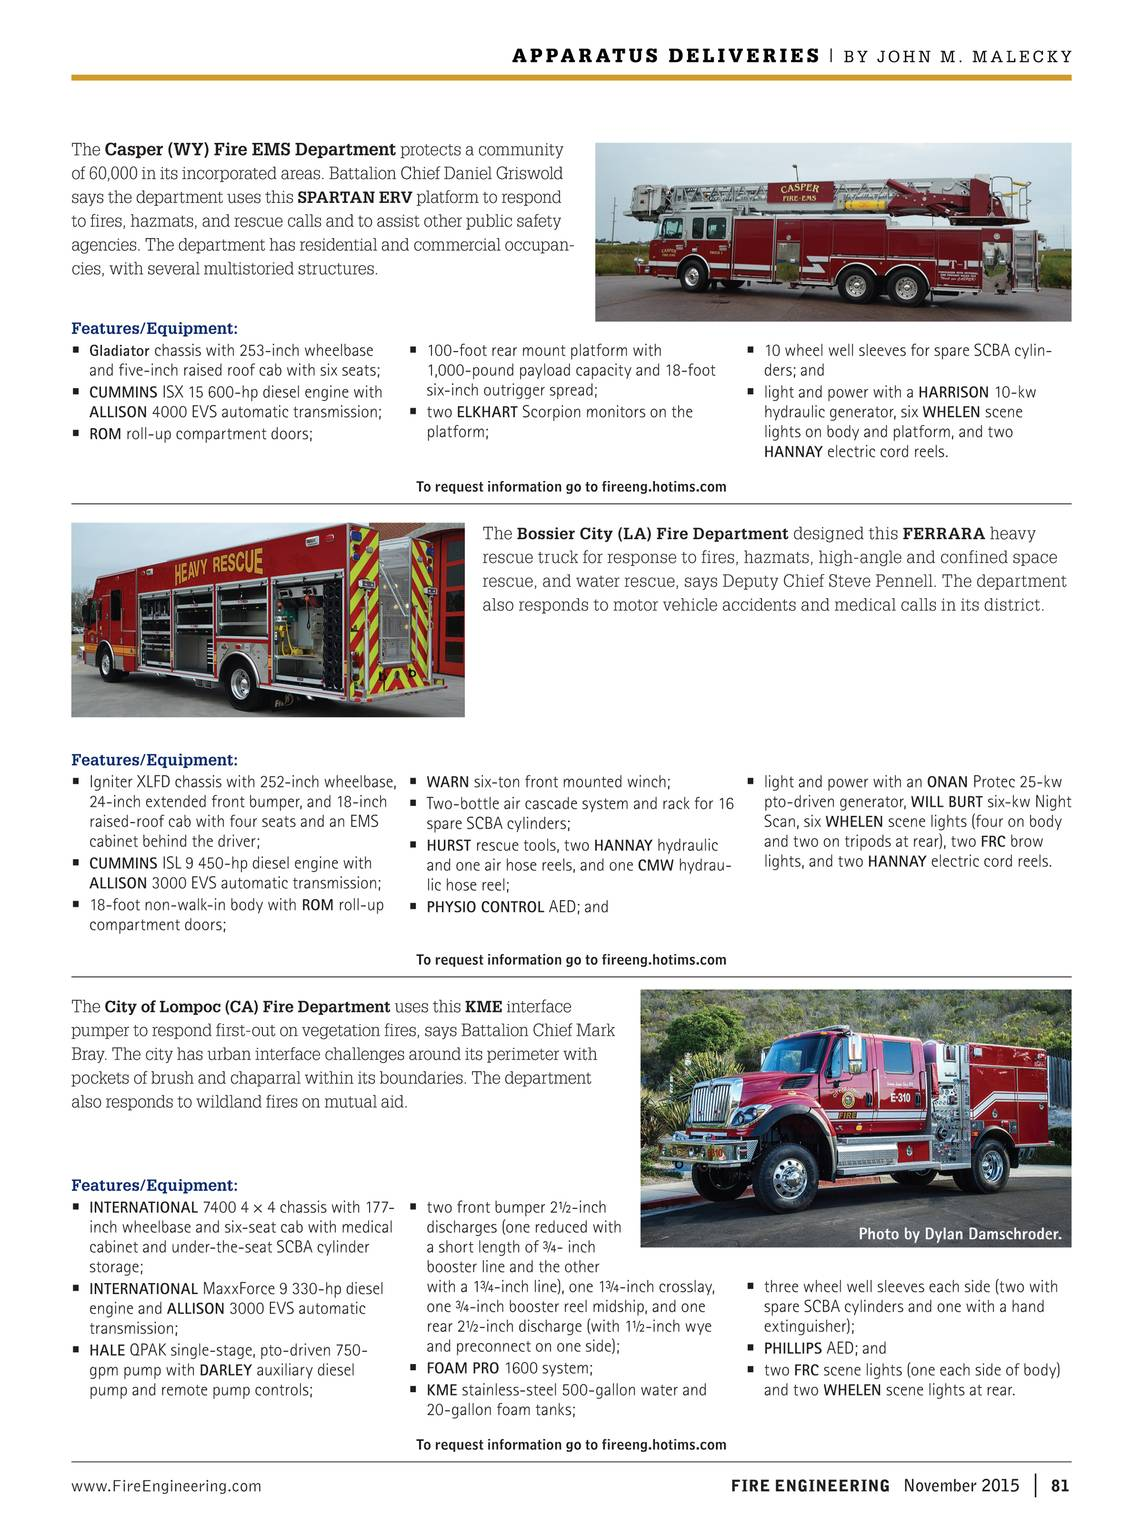 Fire Engineering - November, 2015 - page 80